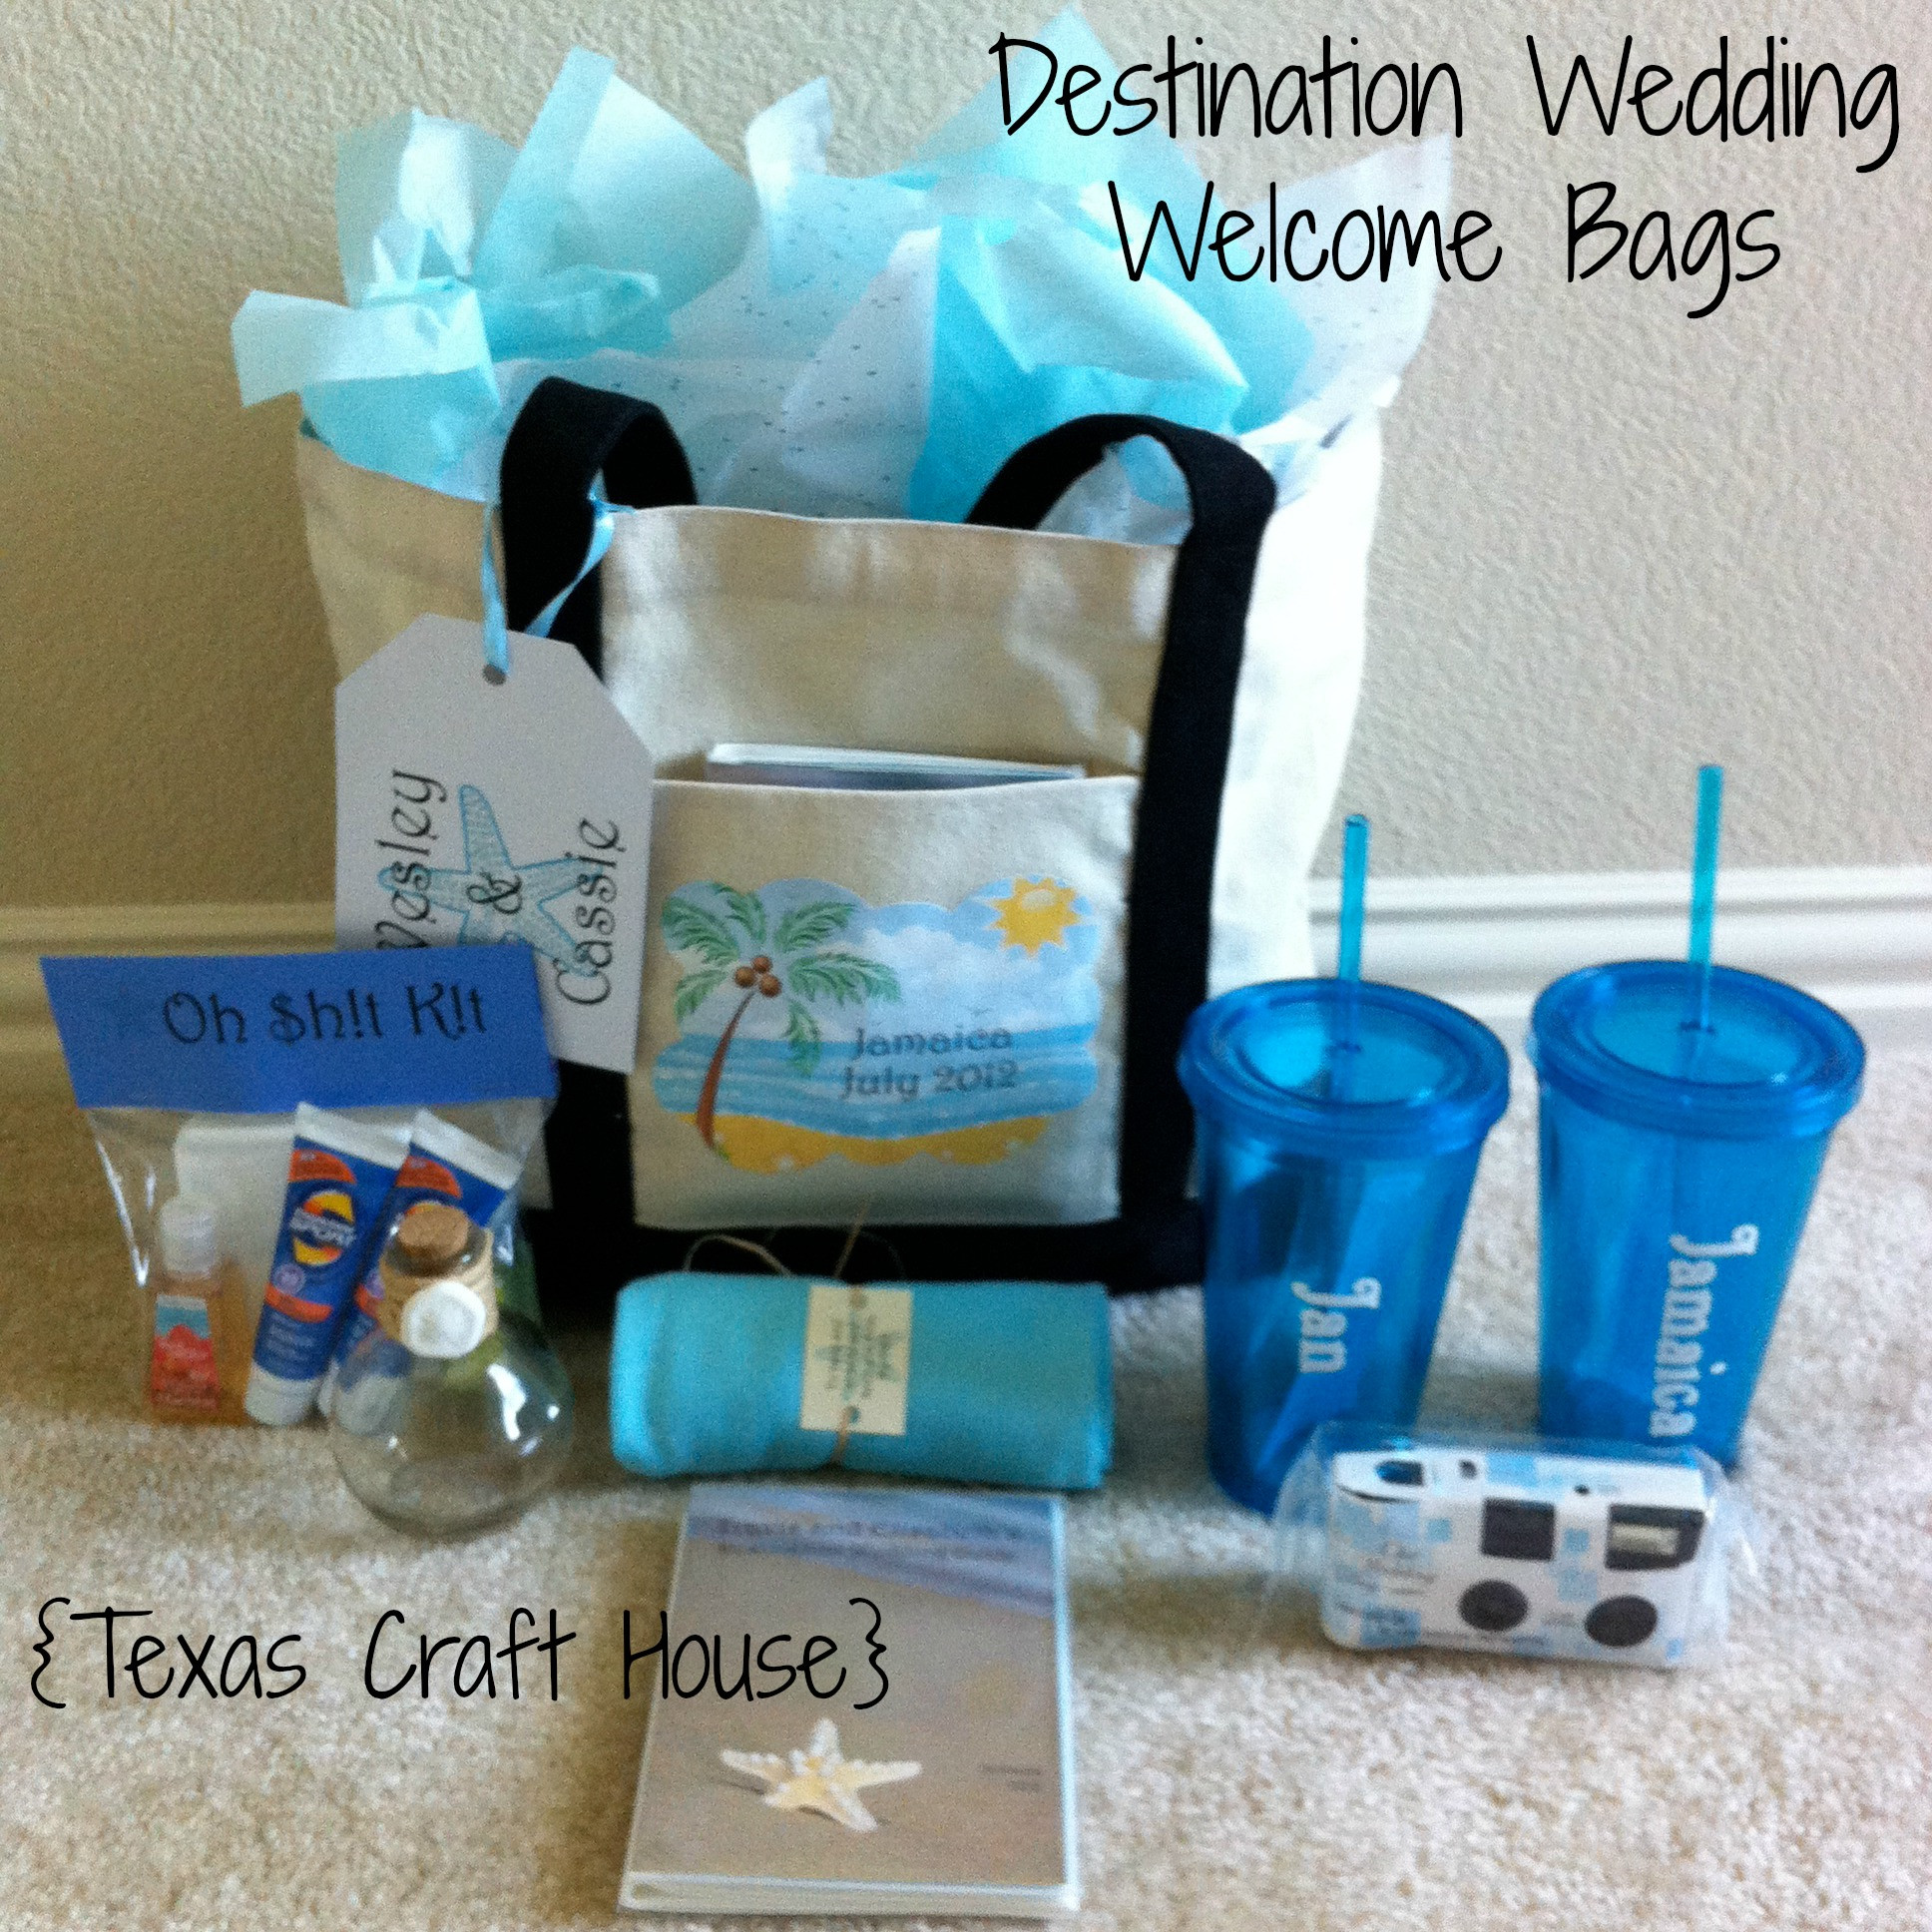 Destination Wedding Gift Ideas  Destination Wedding Wel e Bags – DIY